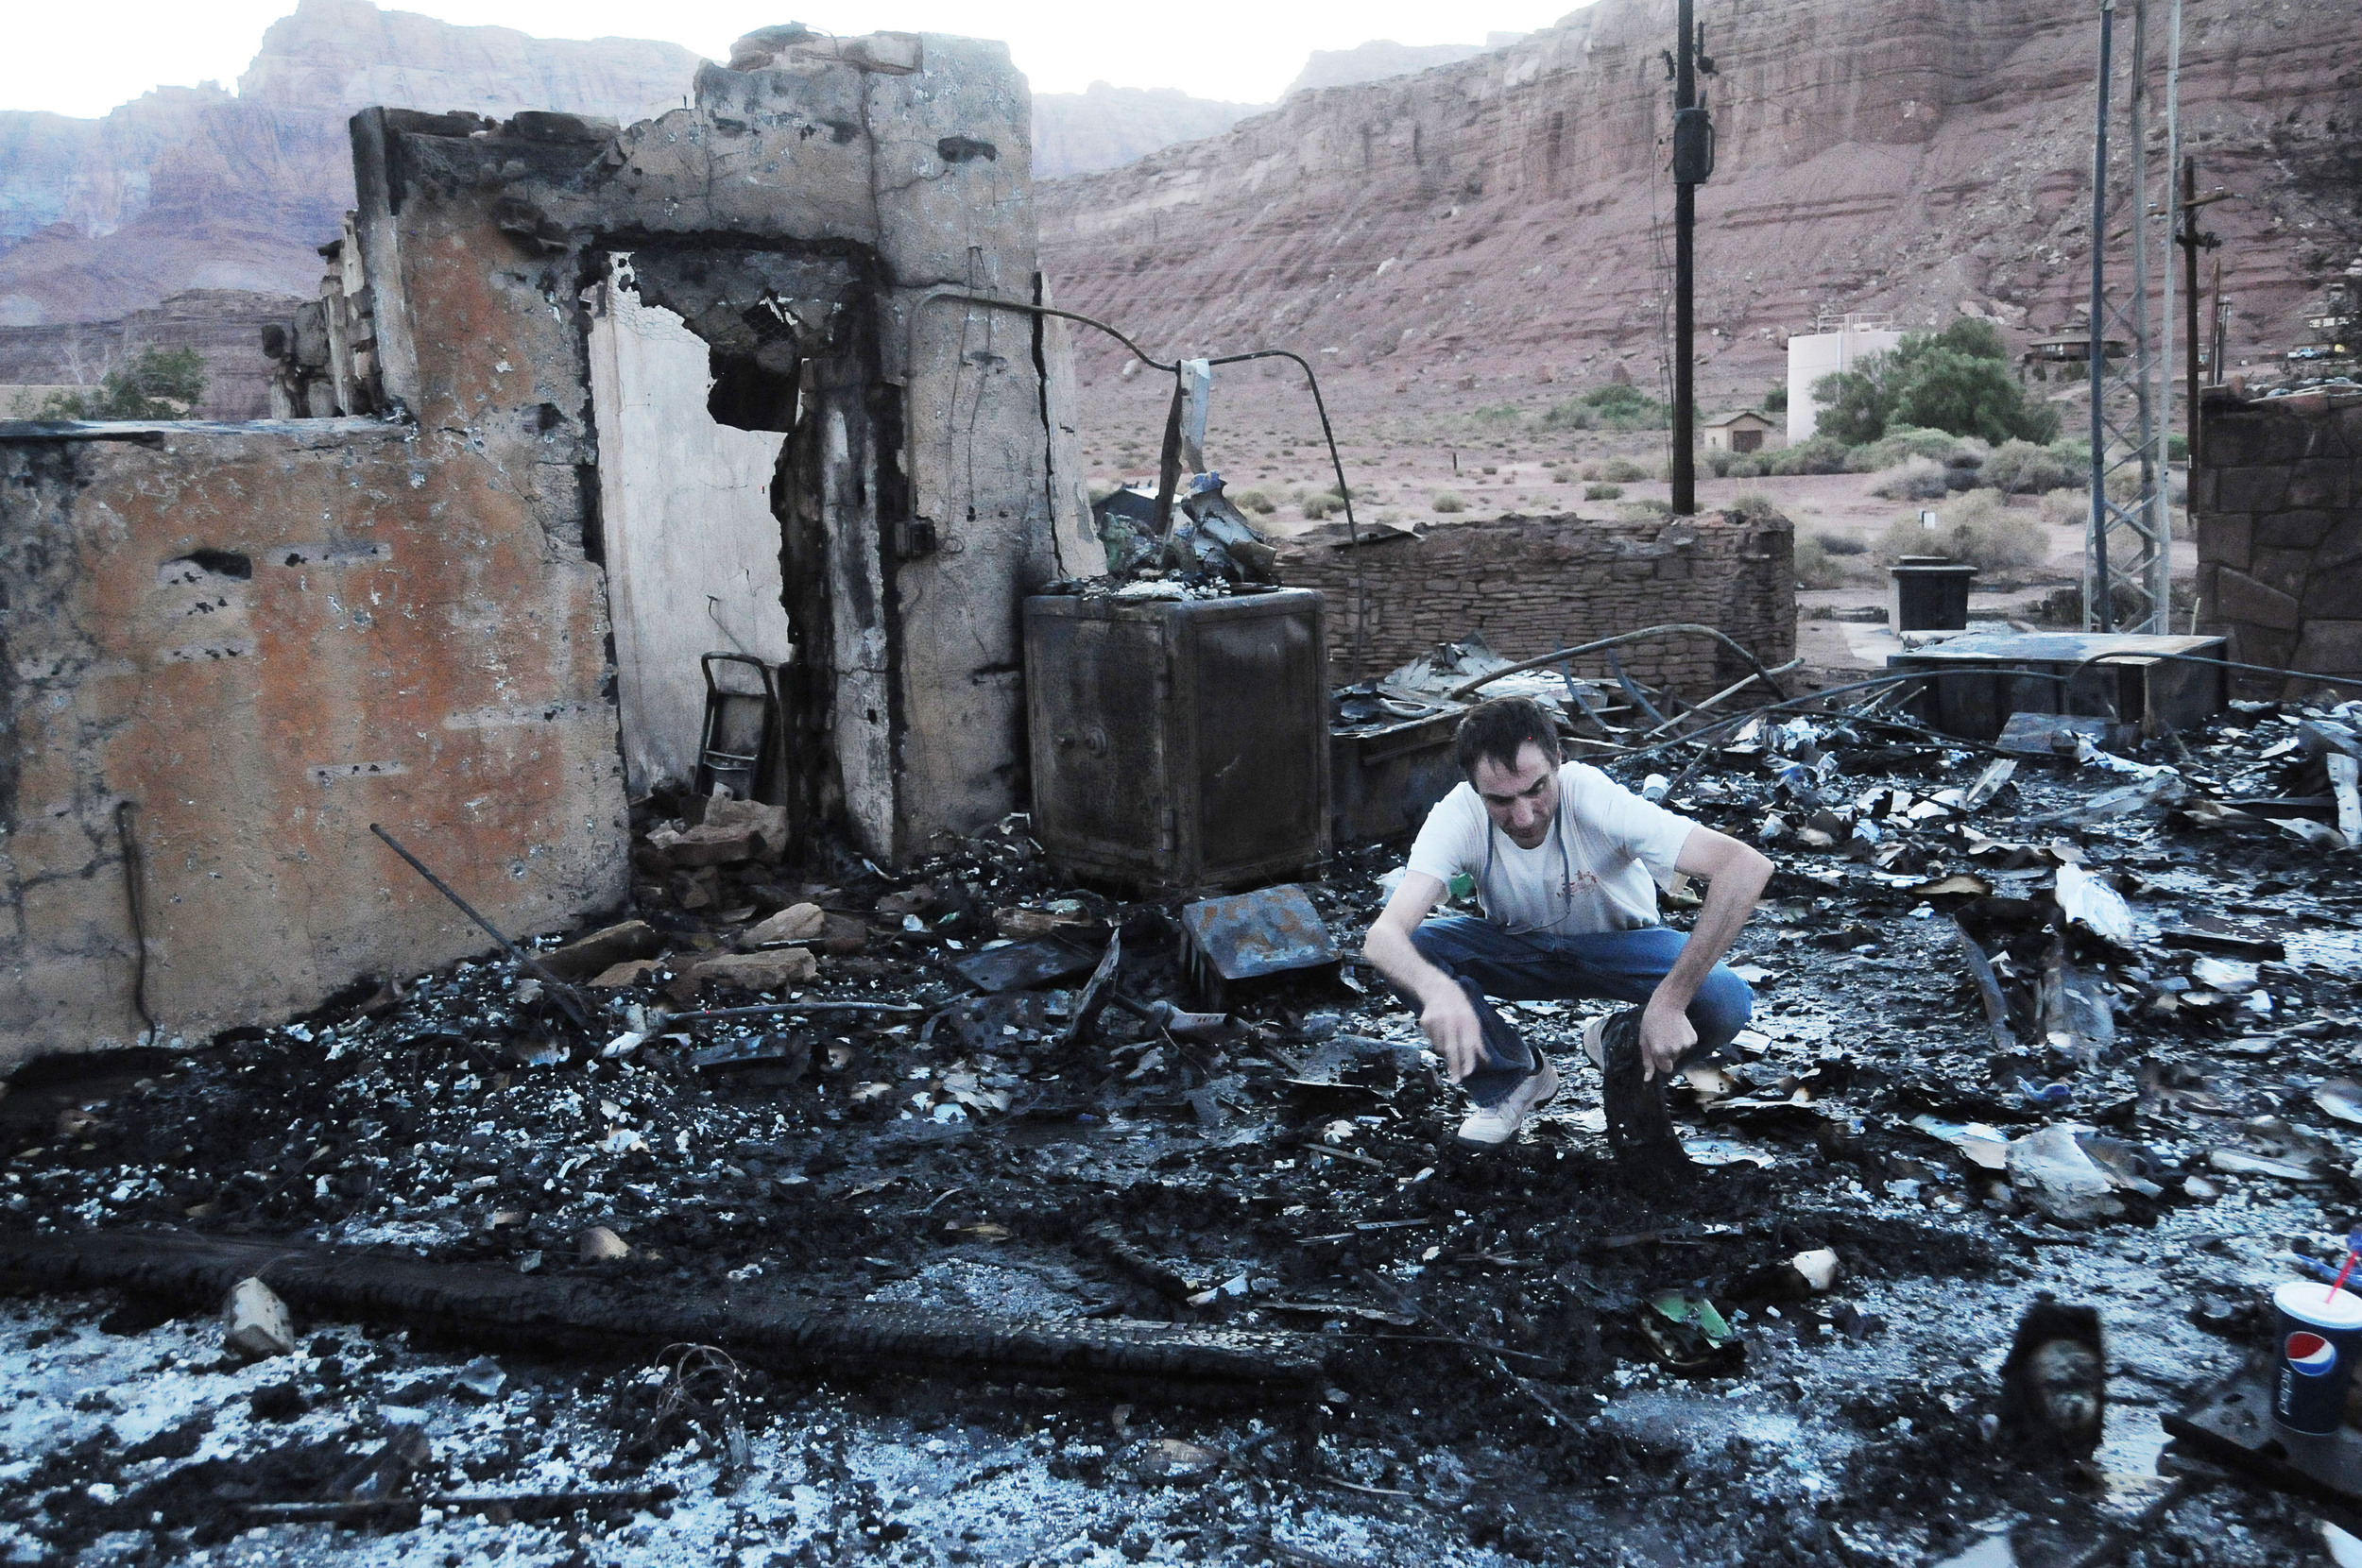 Marble Canyon Lodge manager Barry Adams searches for his office keys in the charred rubble of Arizona's Marble Canyon Lodge. Built in 1926, The lodge is located near the Grand Canyon's North Rim and is a historic pit stop for Grand Canyon and Colorado River tourism. The fire was a result of a gas leak in the lodge's kitchen around 1 a.m. and was unable to be quickly responded to due to the landmark's remote location on the Arizona Strip. June 2013.